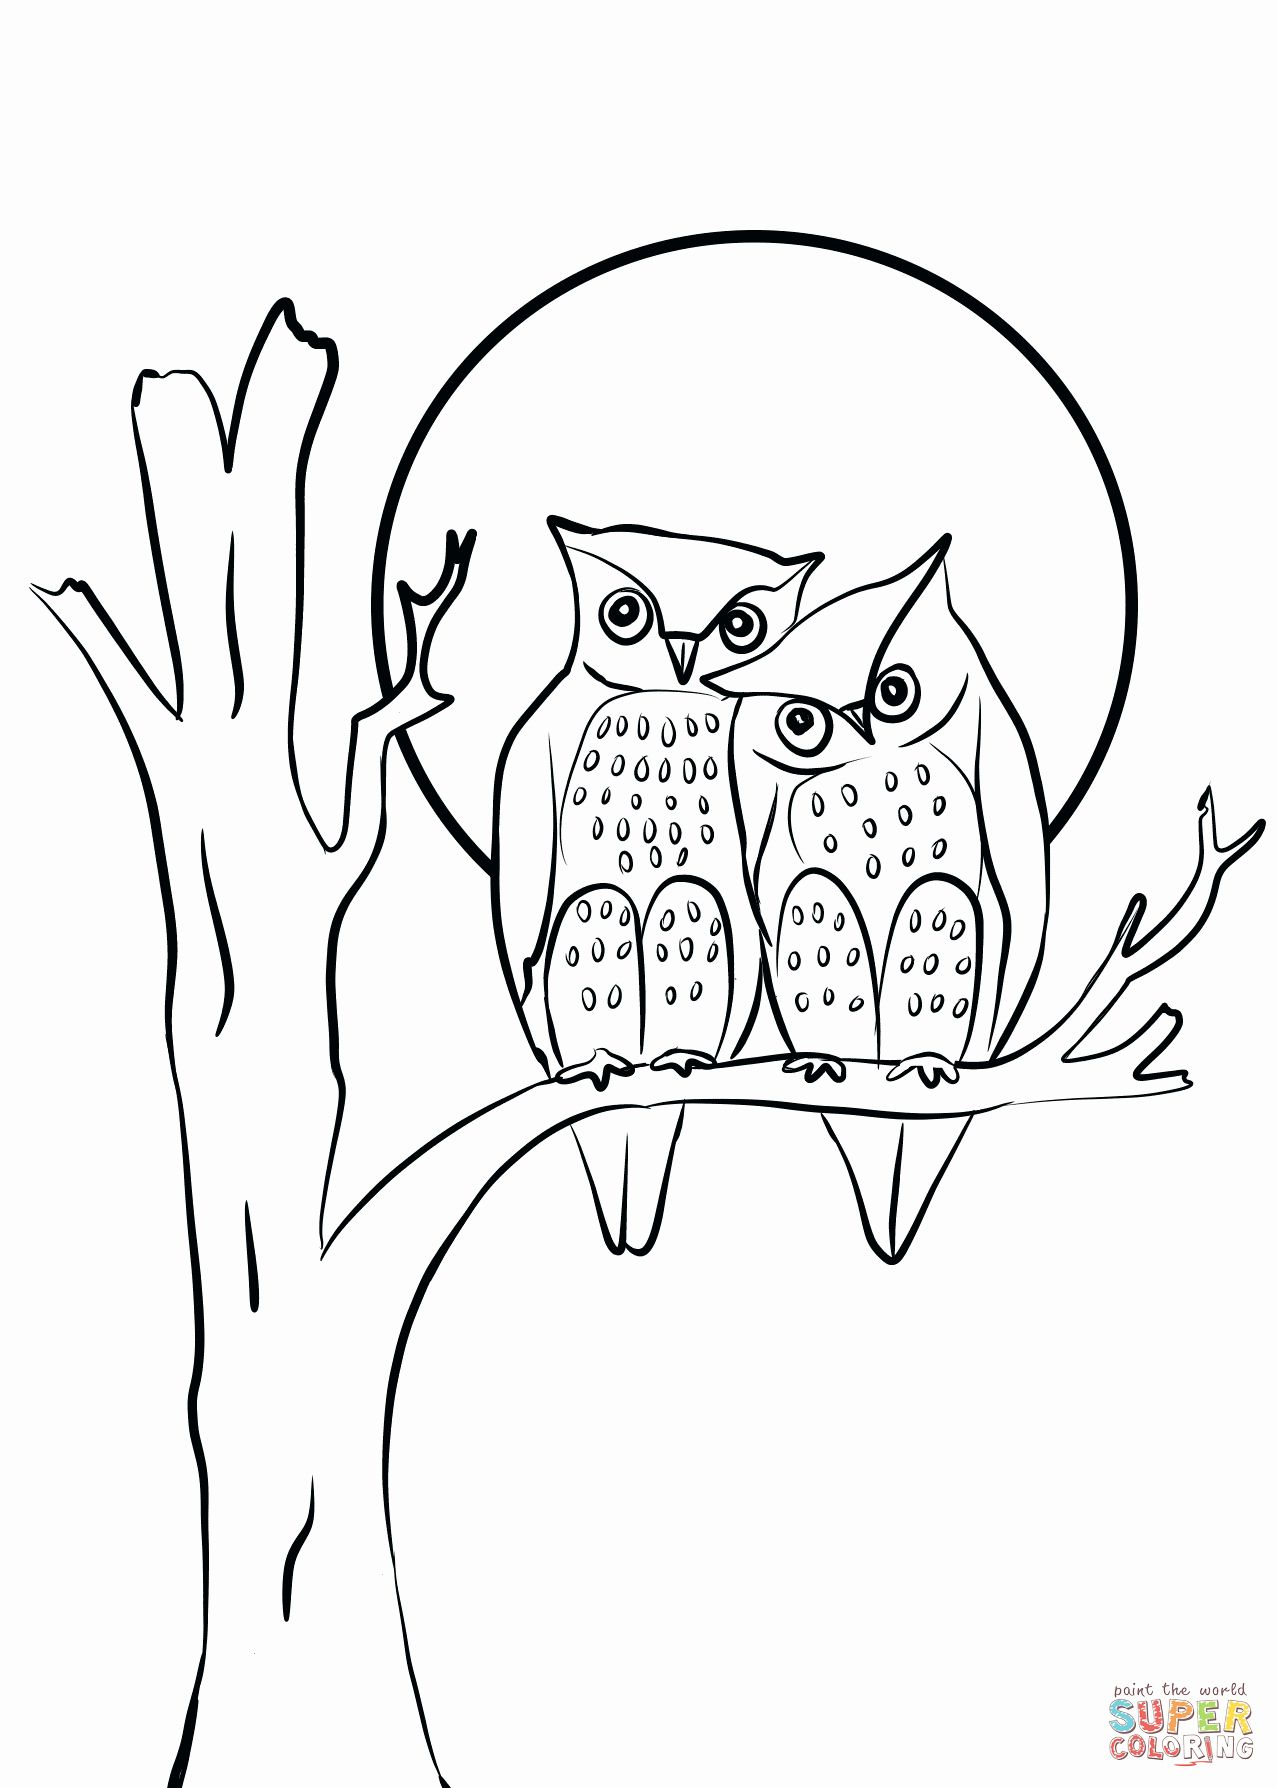 Pennsylvania State Bird Coloring Page Unique Love Birds Coloring